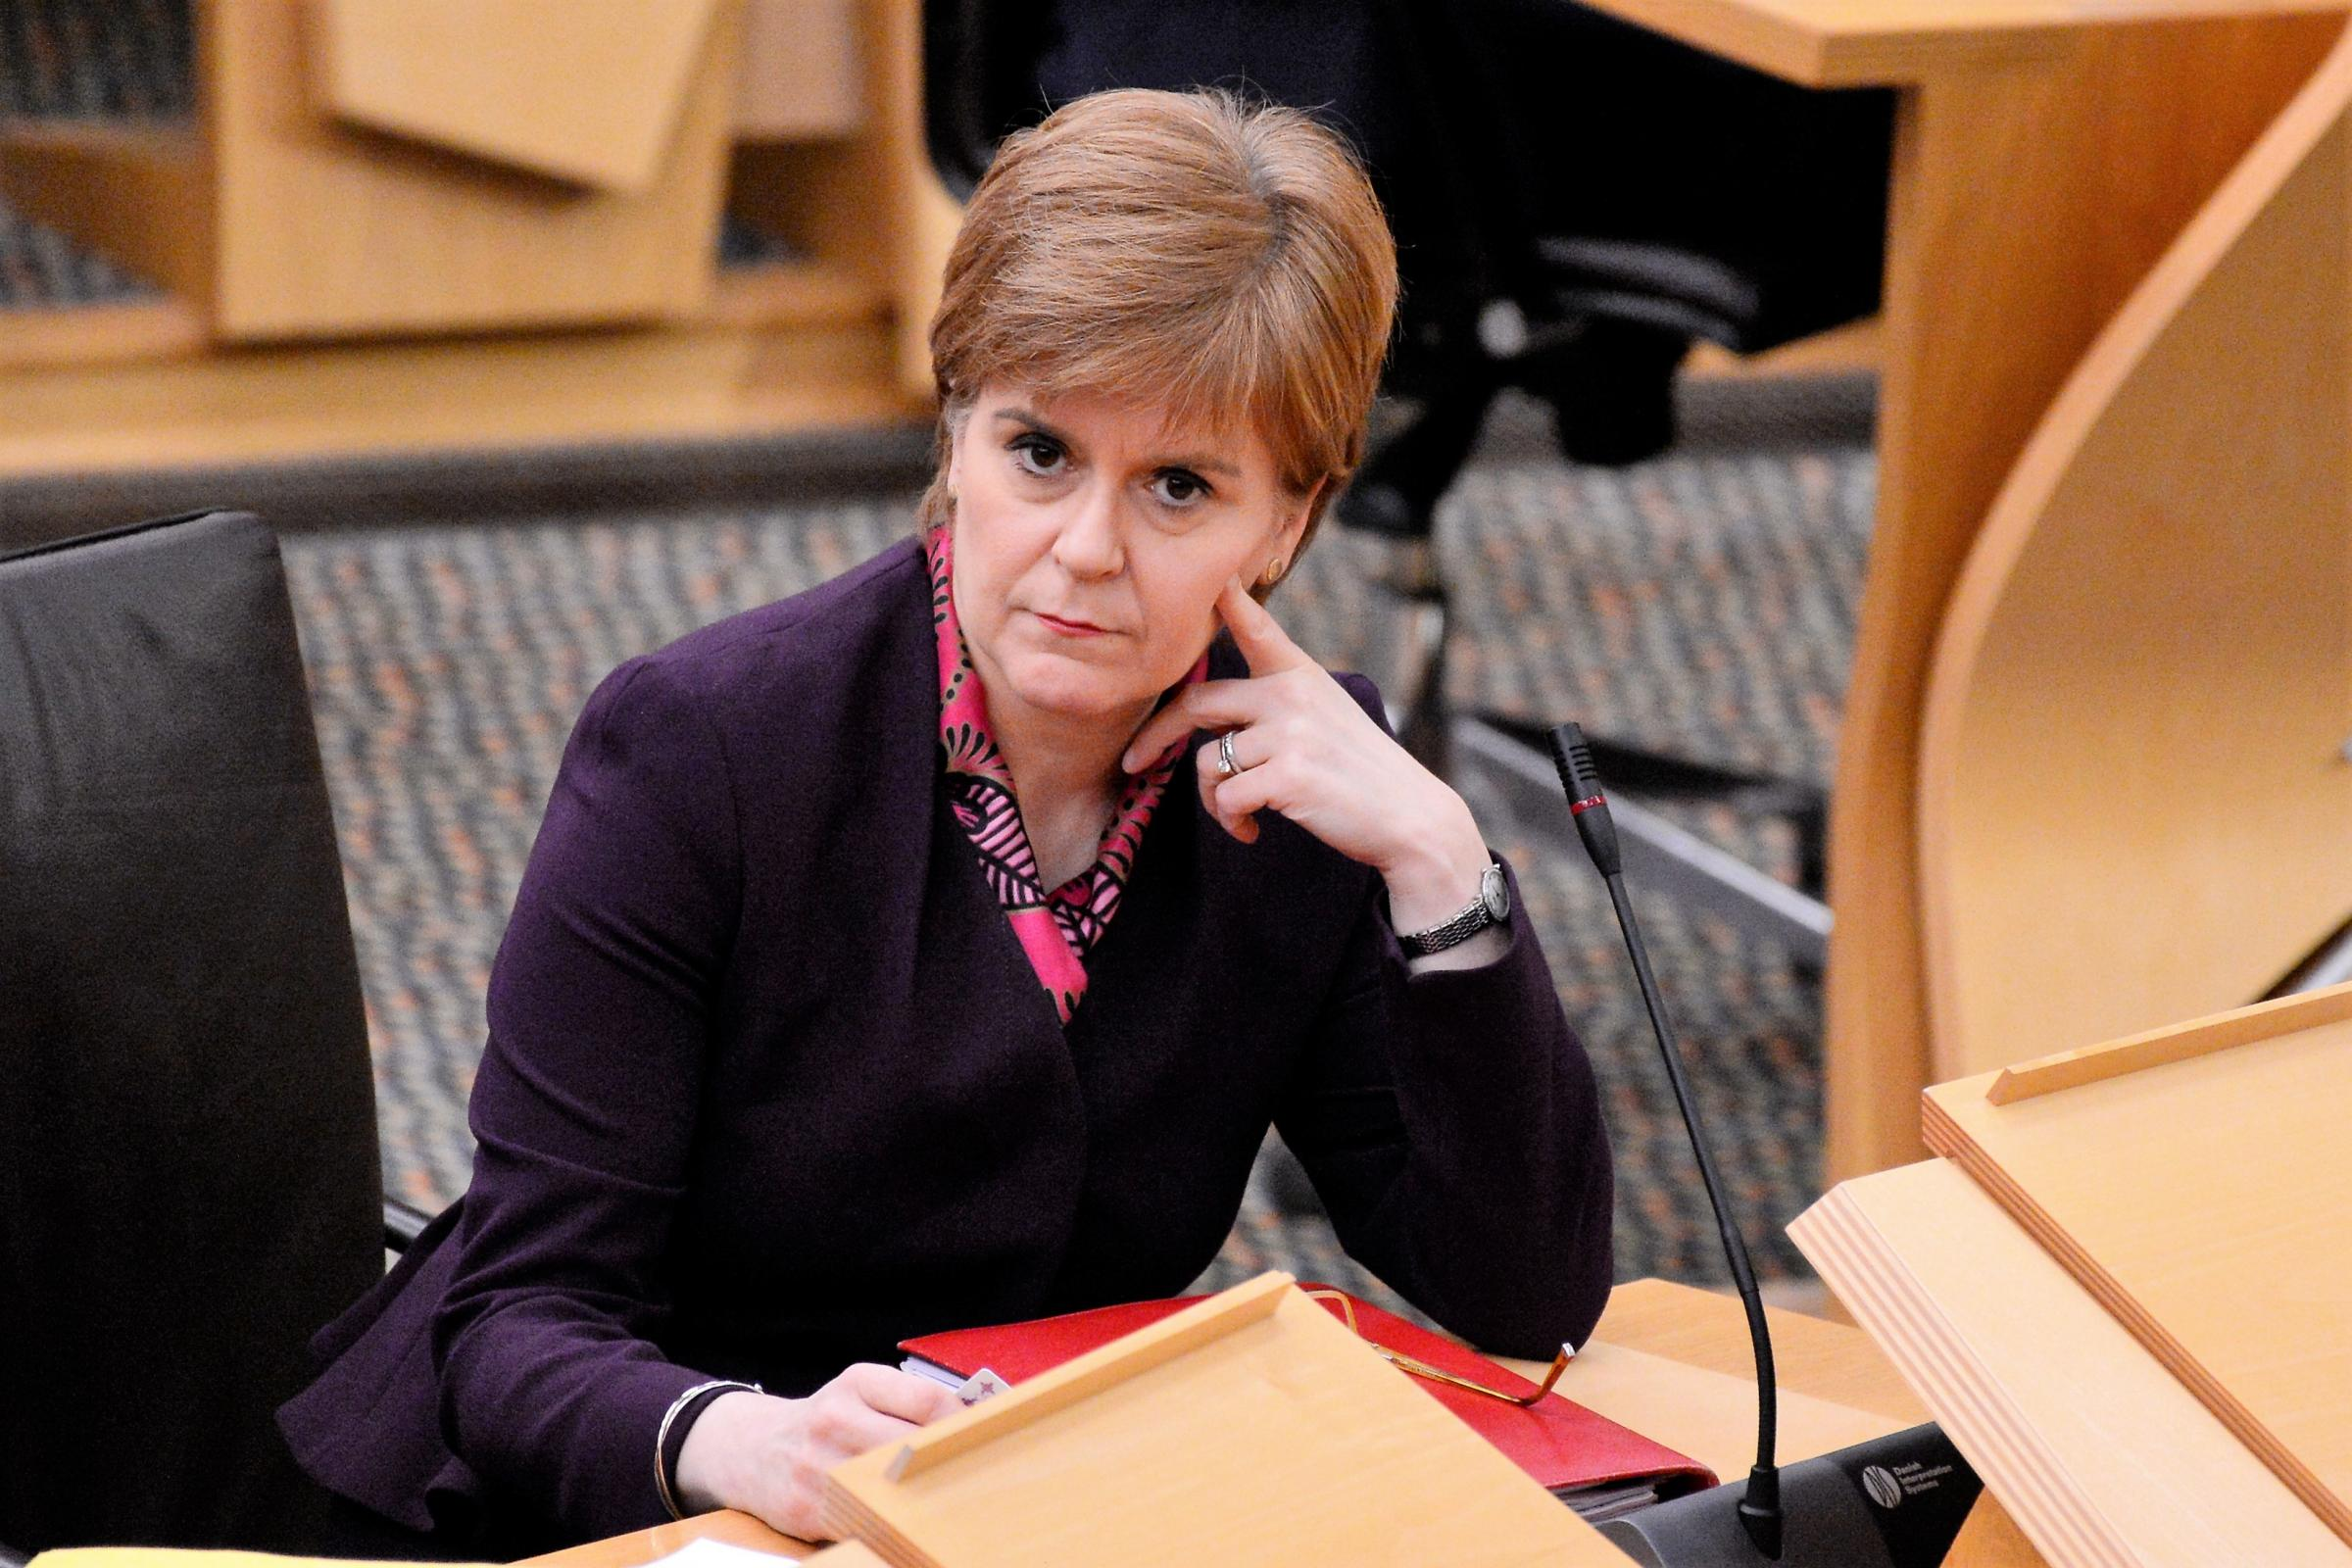 Nicola Sturgeon said she is 'open to hearing concerns' about the company